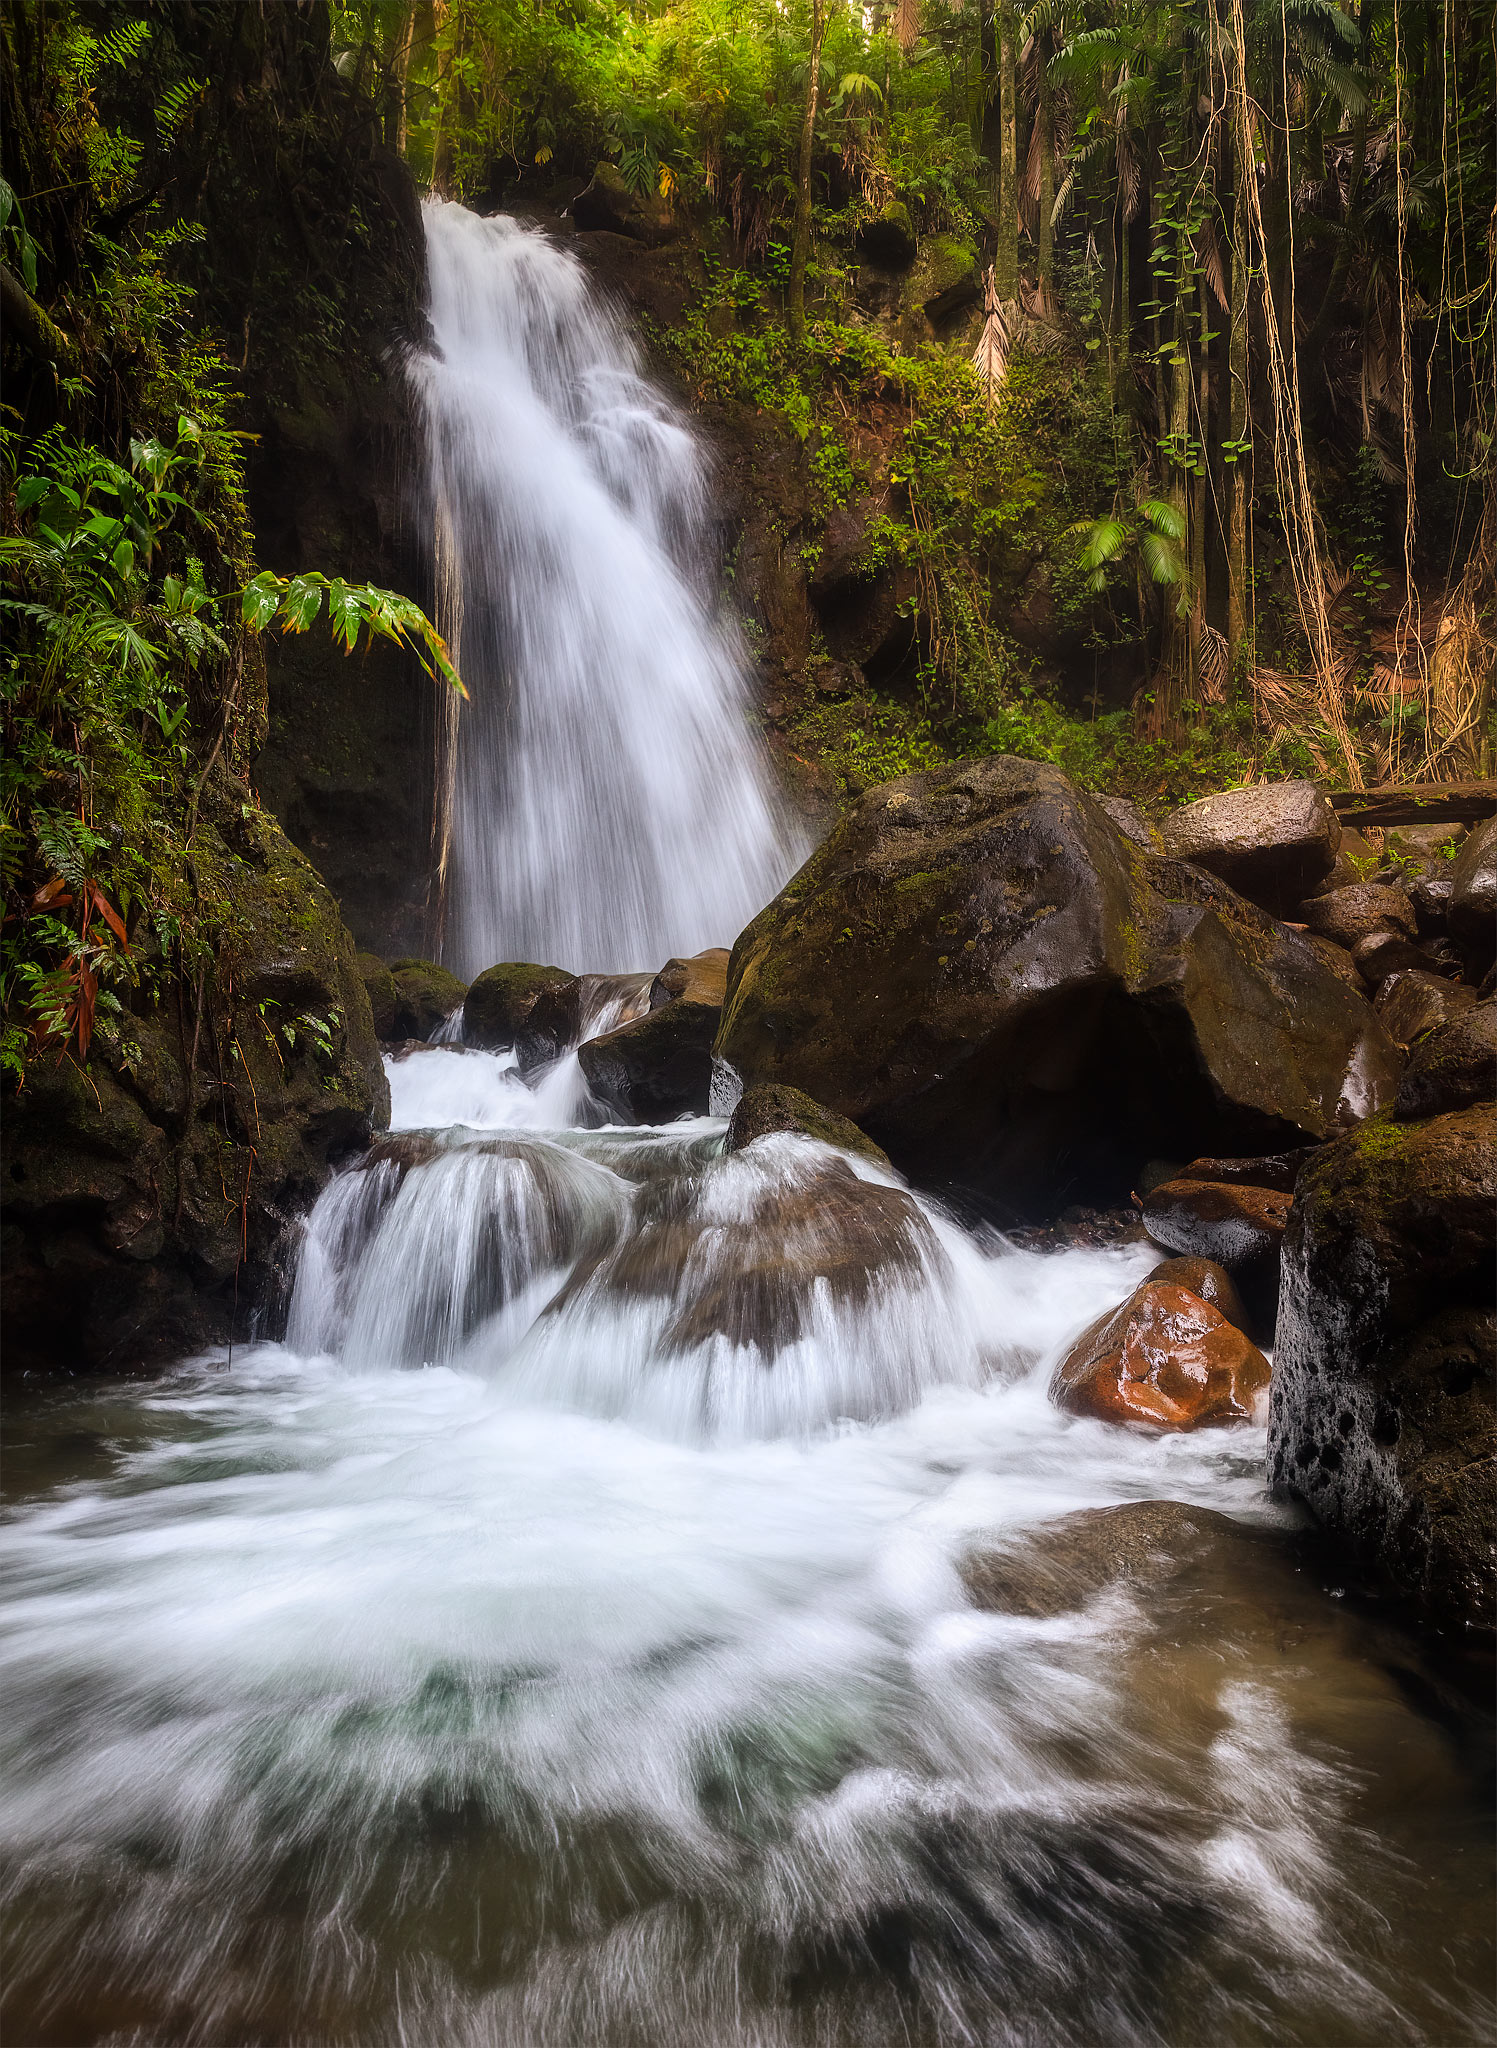 In this image, I captured a waterfall flowing through a forest on the Big Island of Hawaii. This is just one of the thousands...